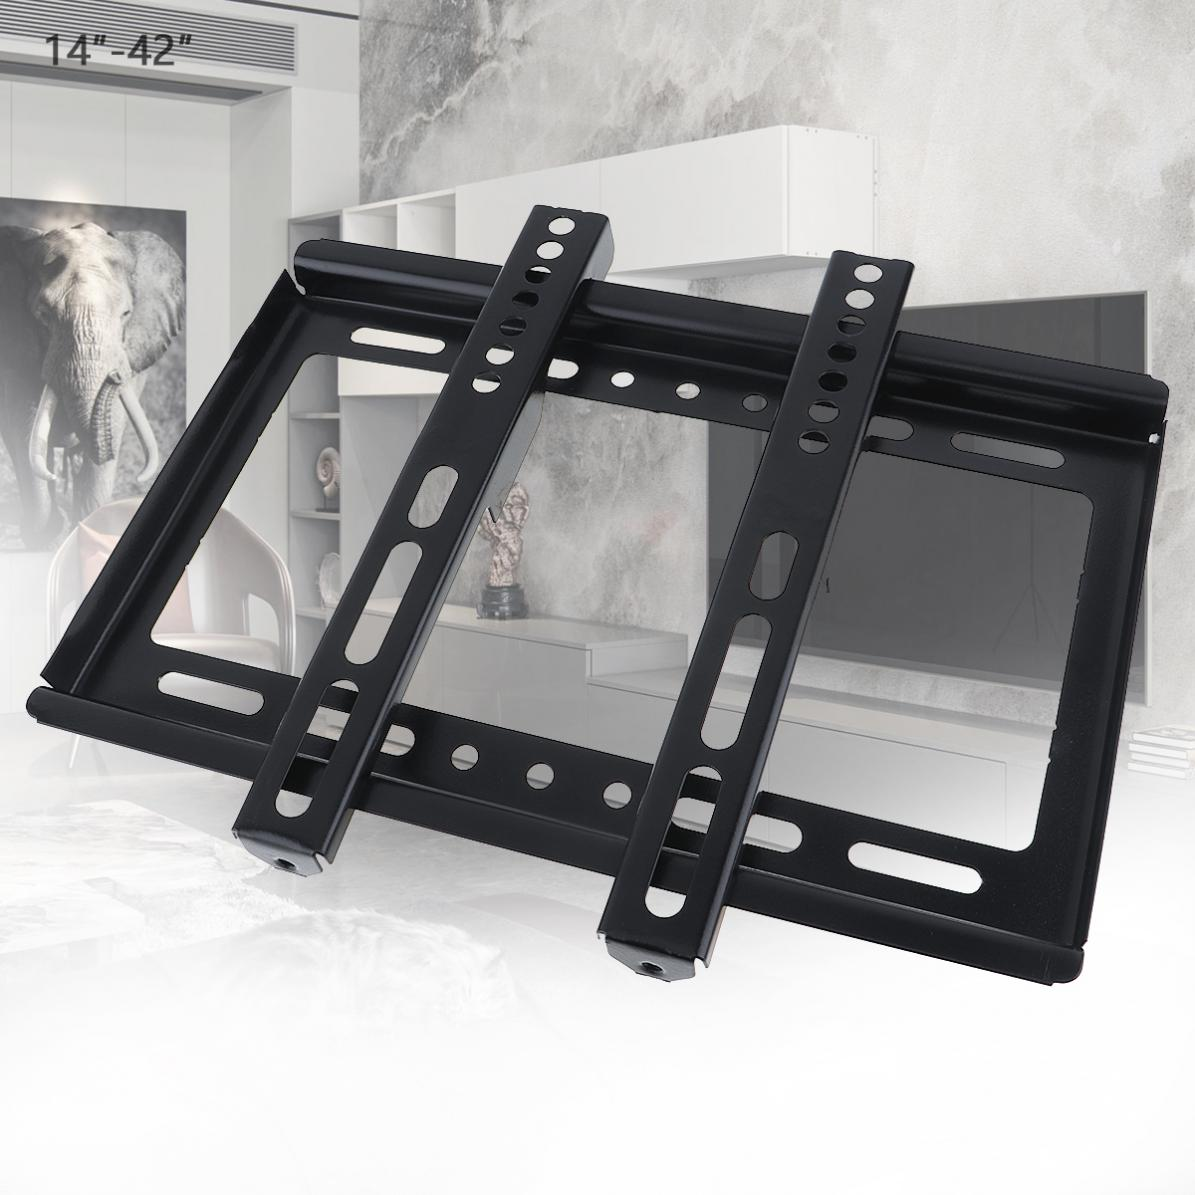 Universal Thin 25KG Black TV Wall Mount Bracket Flat Panel TV Frame with Gradienter for 14-42 Inch LCD LED Monitor Flat Pan(China)